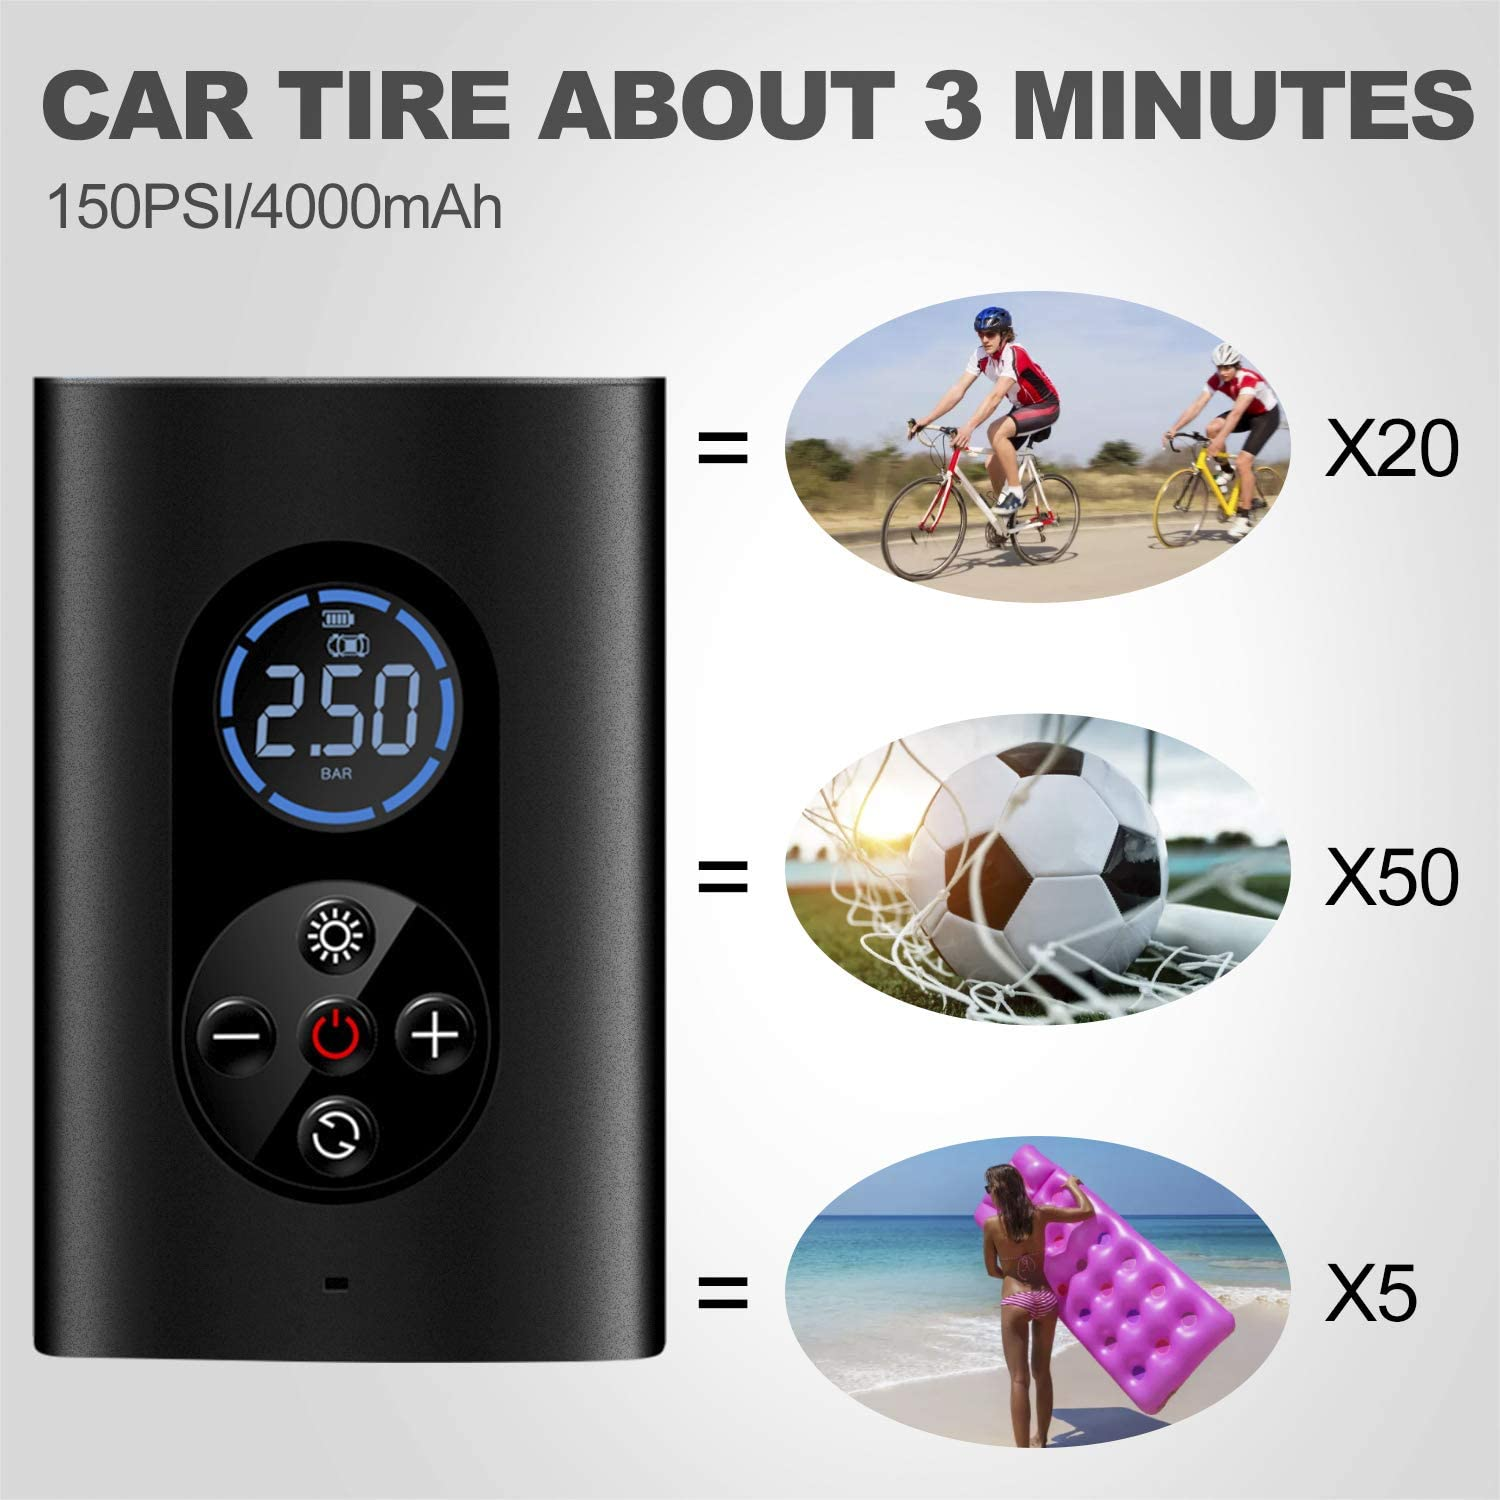 Extra-large Capacity 4000mAh Rechargeable Inflation balls and other inflatable Cordless Tire pump Handheld Tire inflator with LED Lighting and Digital Display for Bicycles Portable Air Compressor